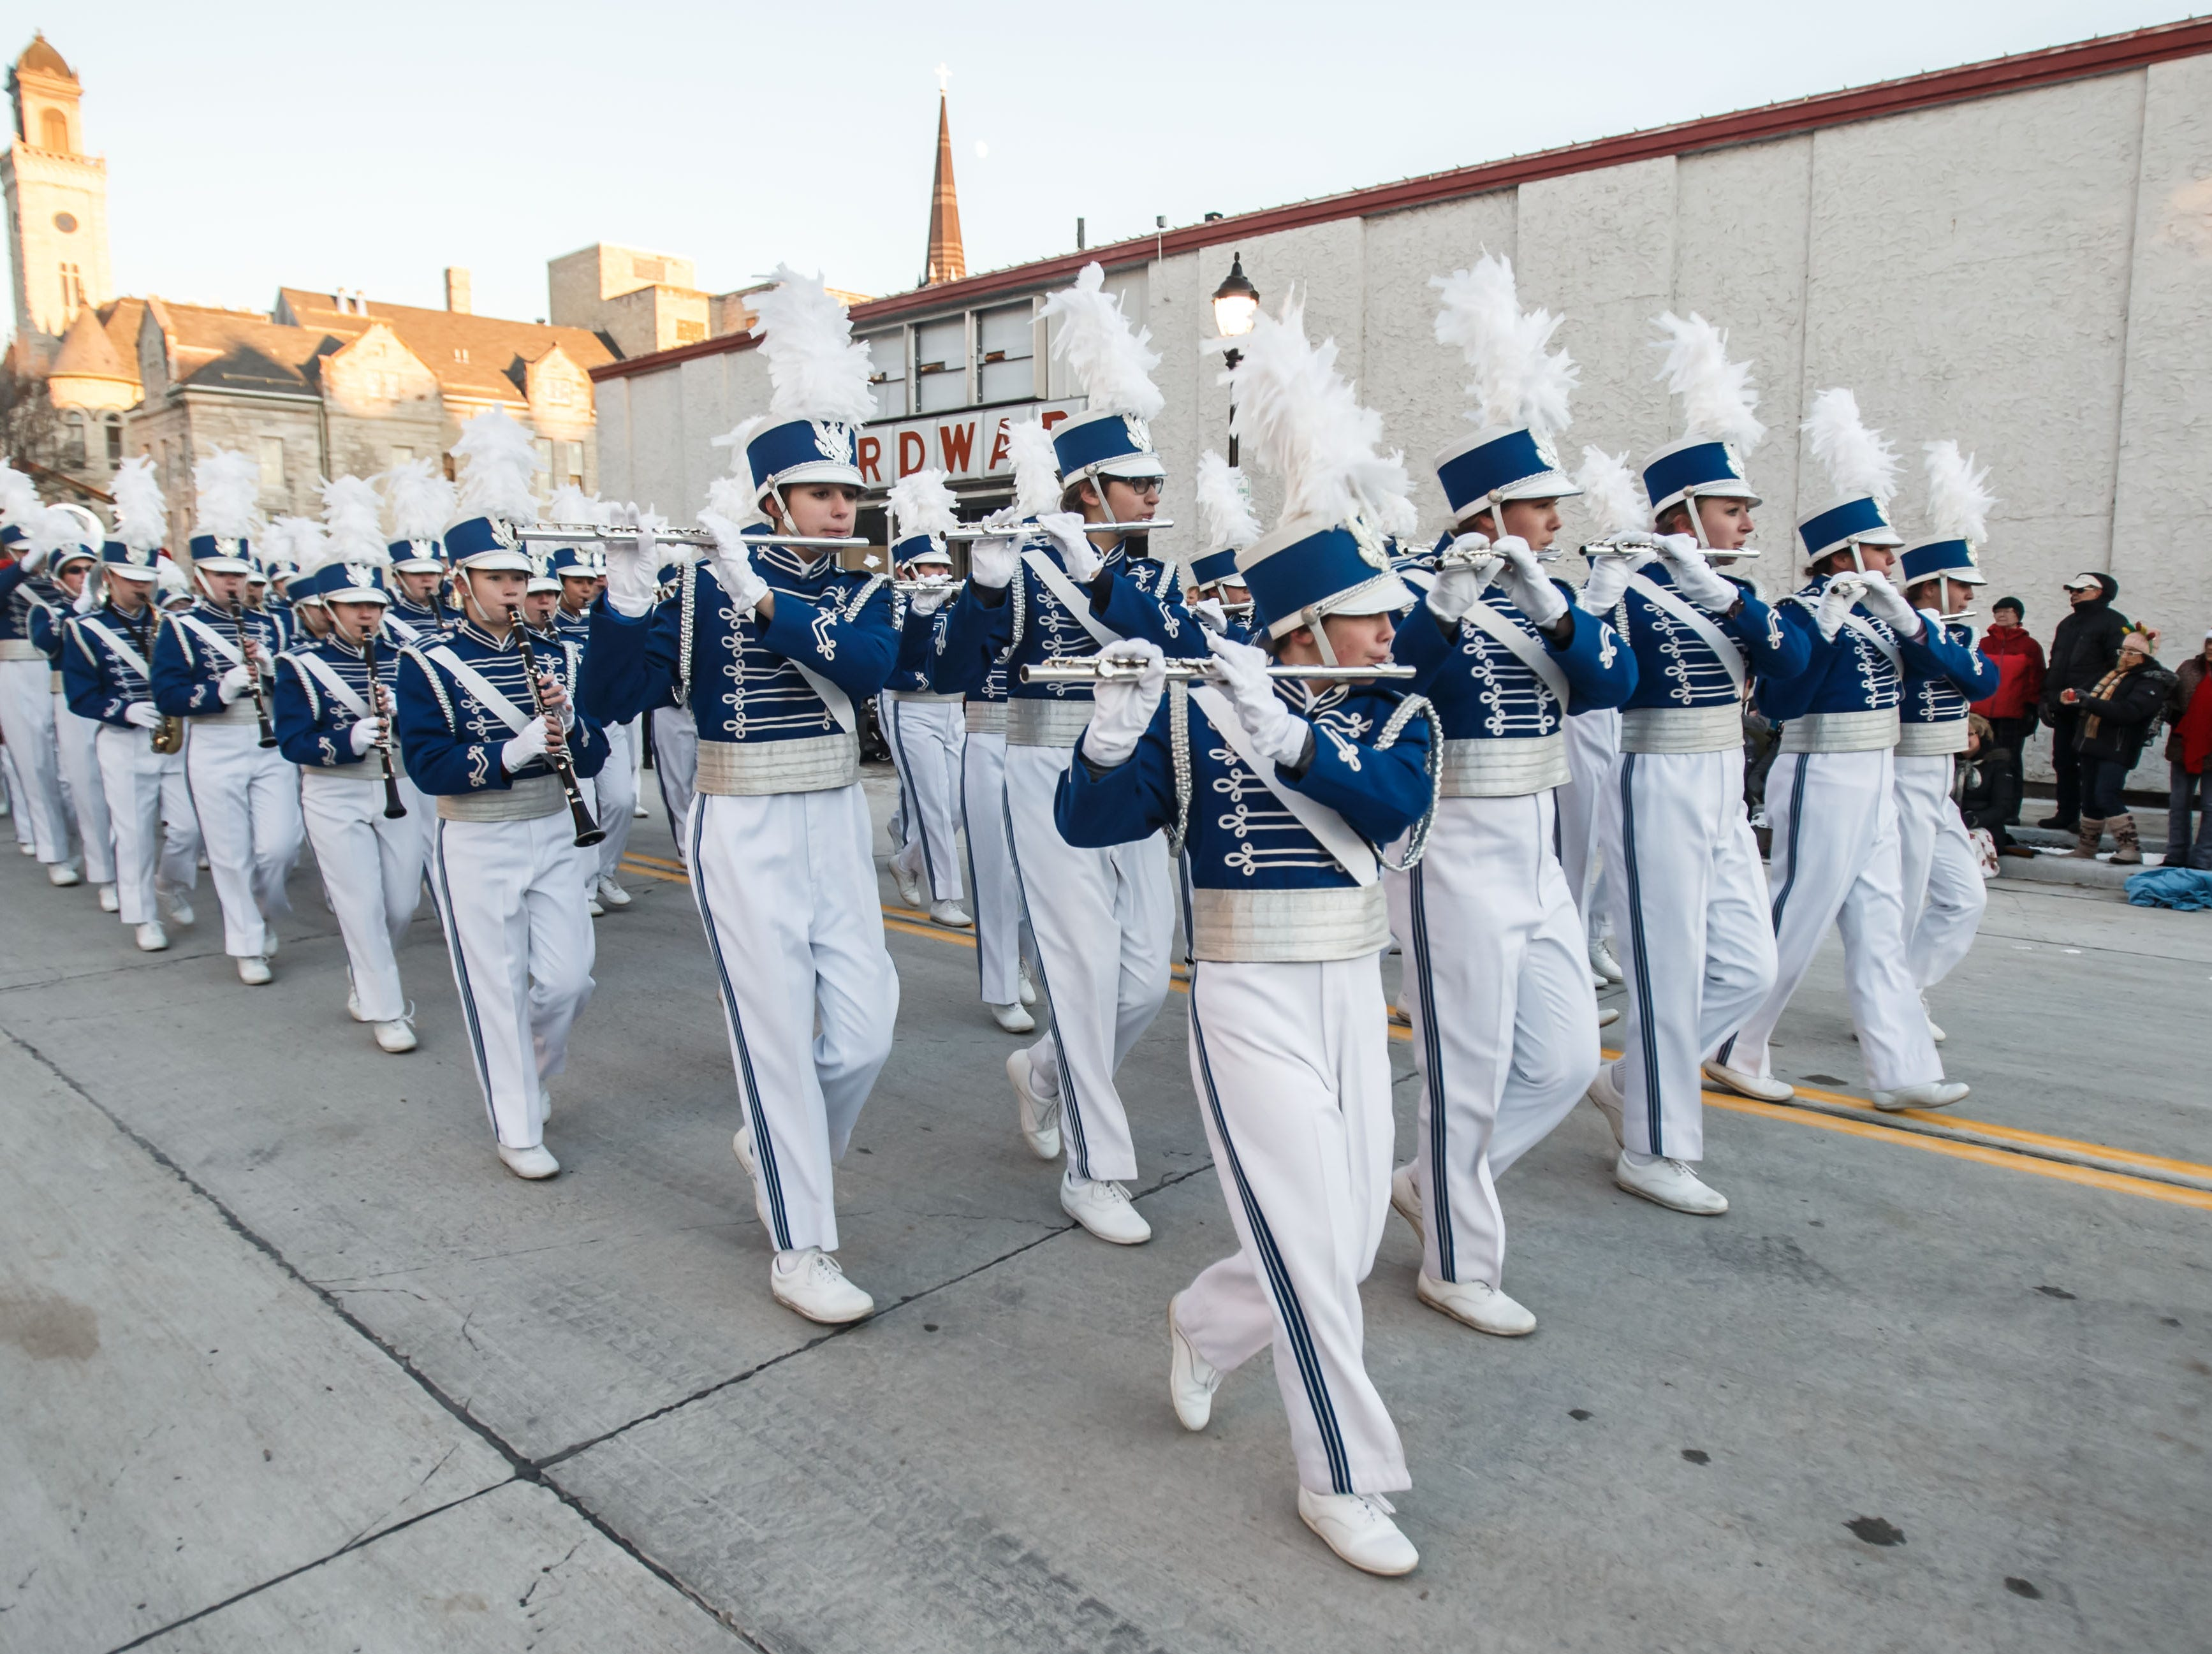 Members of the Waukesha West Marching Band participate in the 56th annual Waukesha Christmas Parade on Sunday, Nov. 18, 2018.